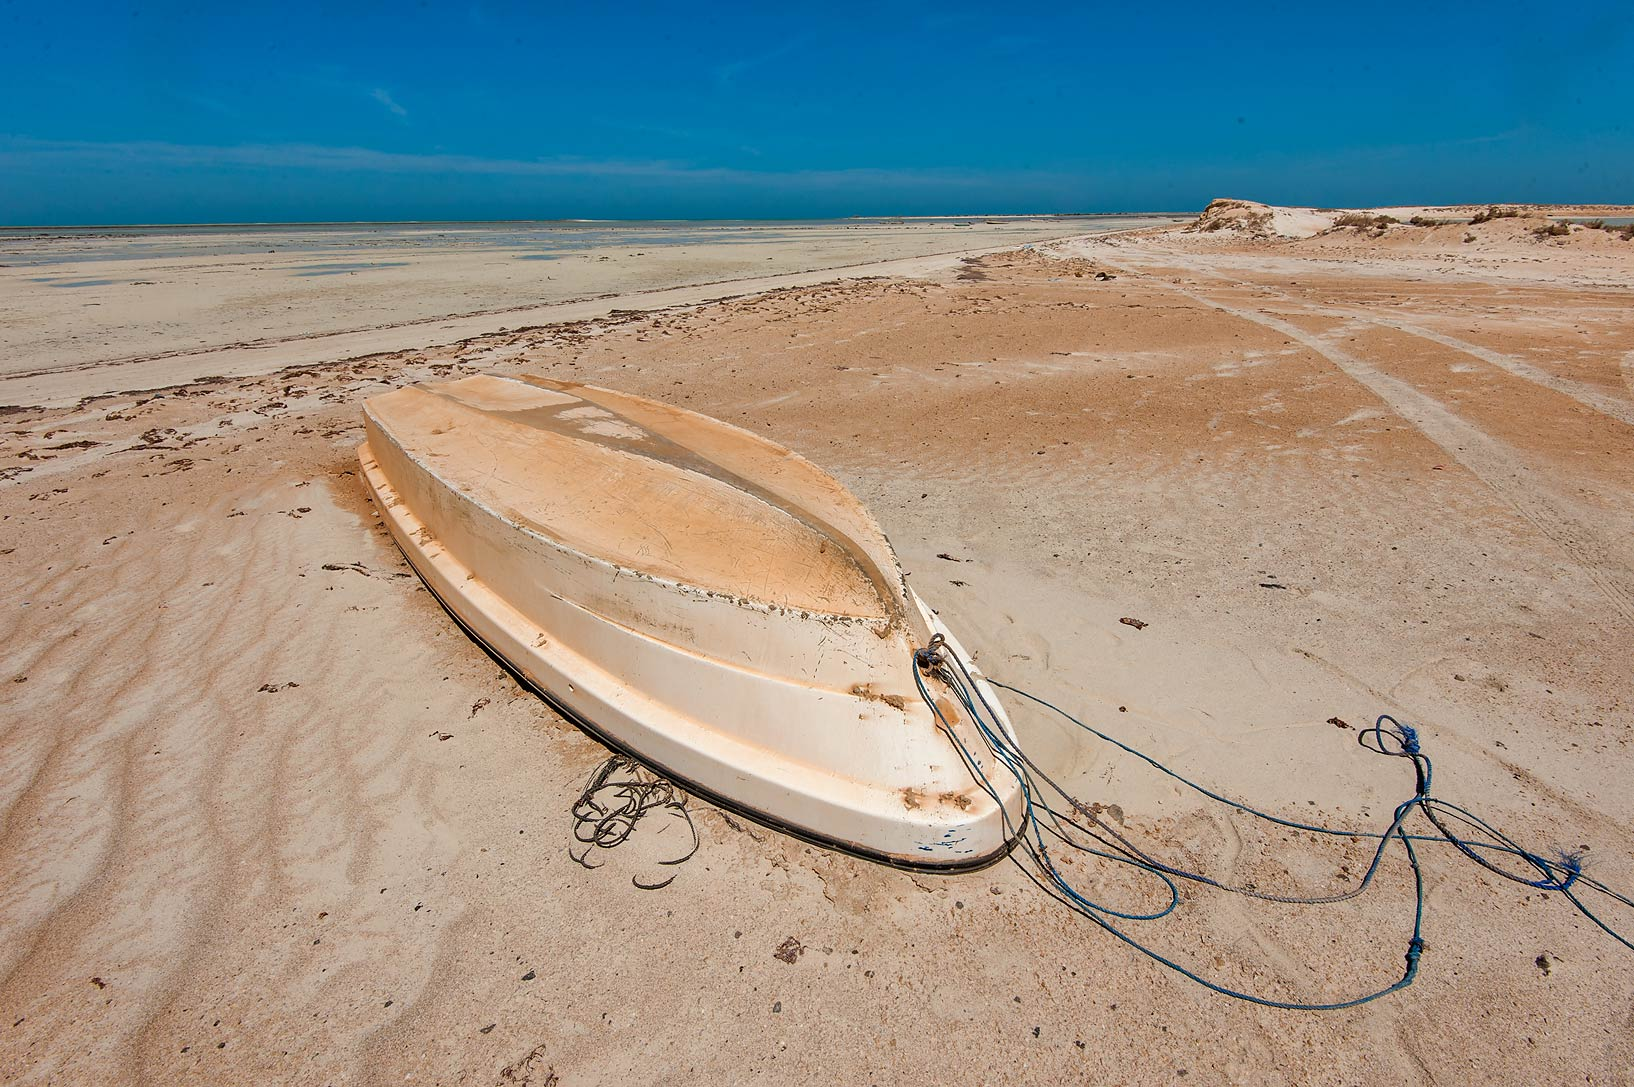 Dusty boat on a beach in Khasooma area. Ruwais, Northern Qatar